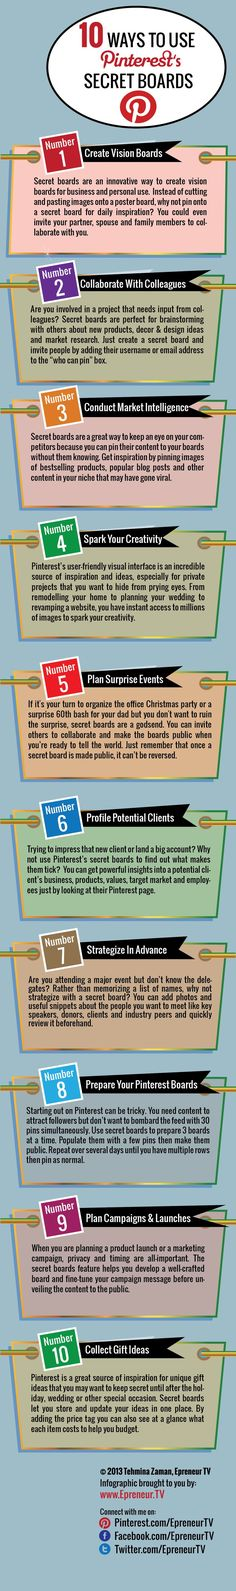 infographic showing 10 ways to use Pinterest secret boards